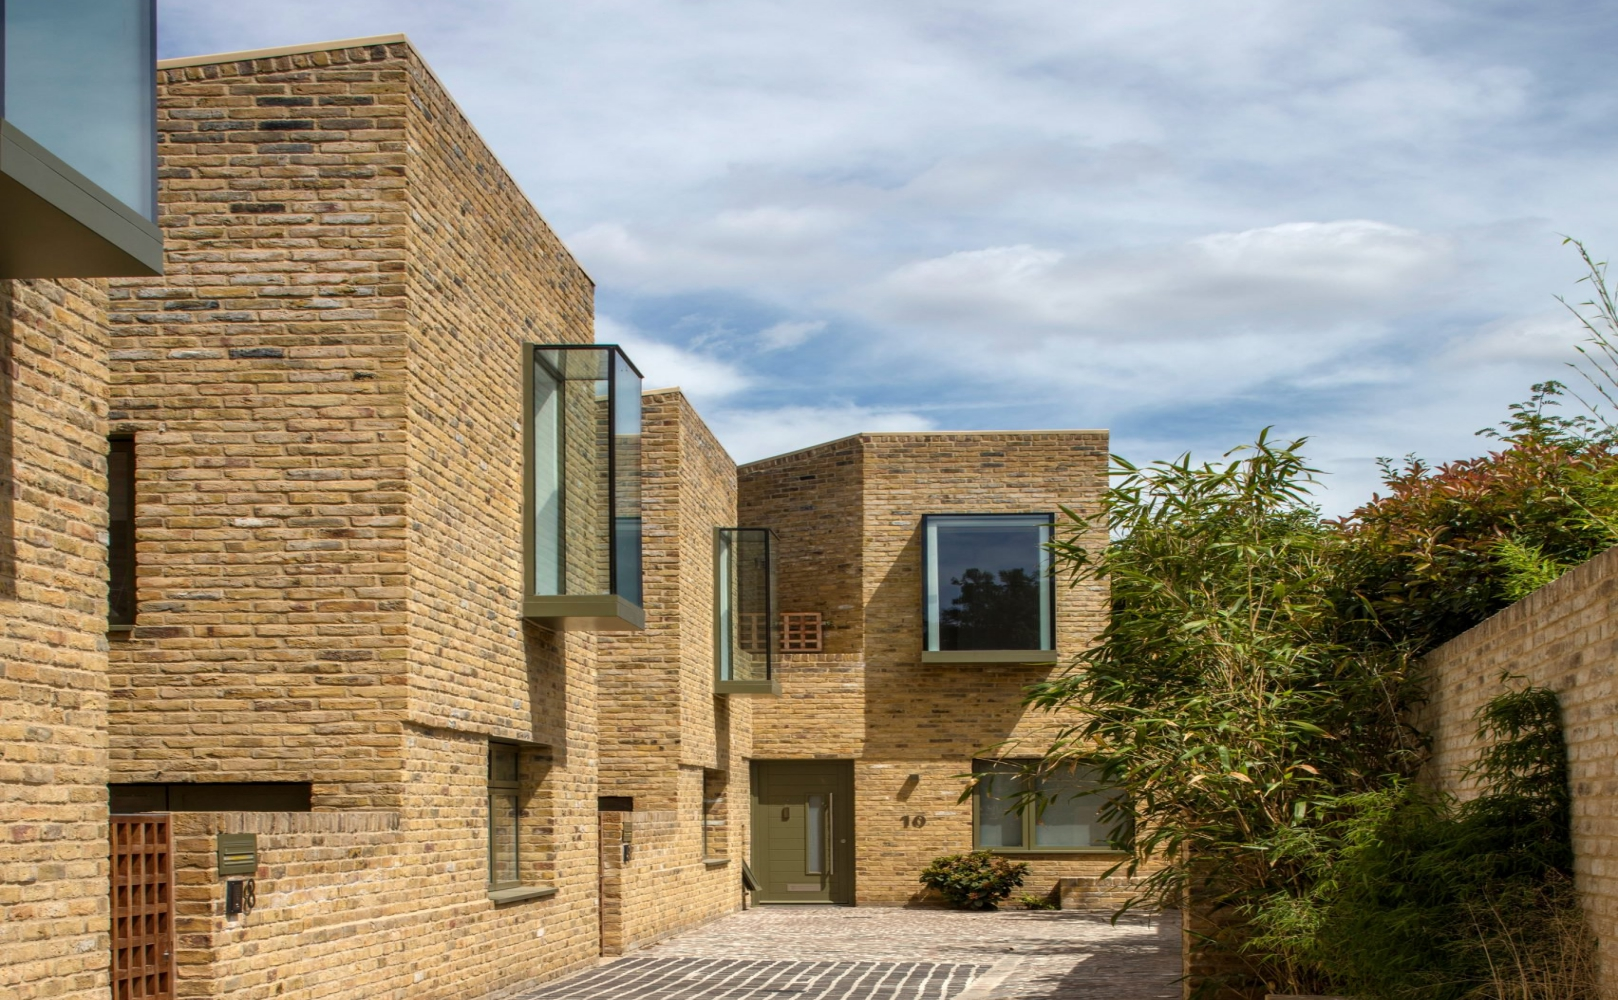 xxmoray-mews-peter-barber-architecture-residential-london-housing_dezeen_2364_col_3-1704x2556